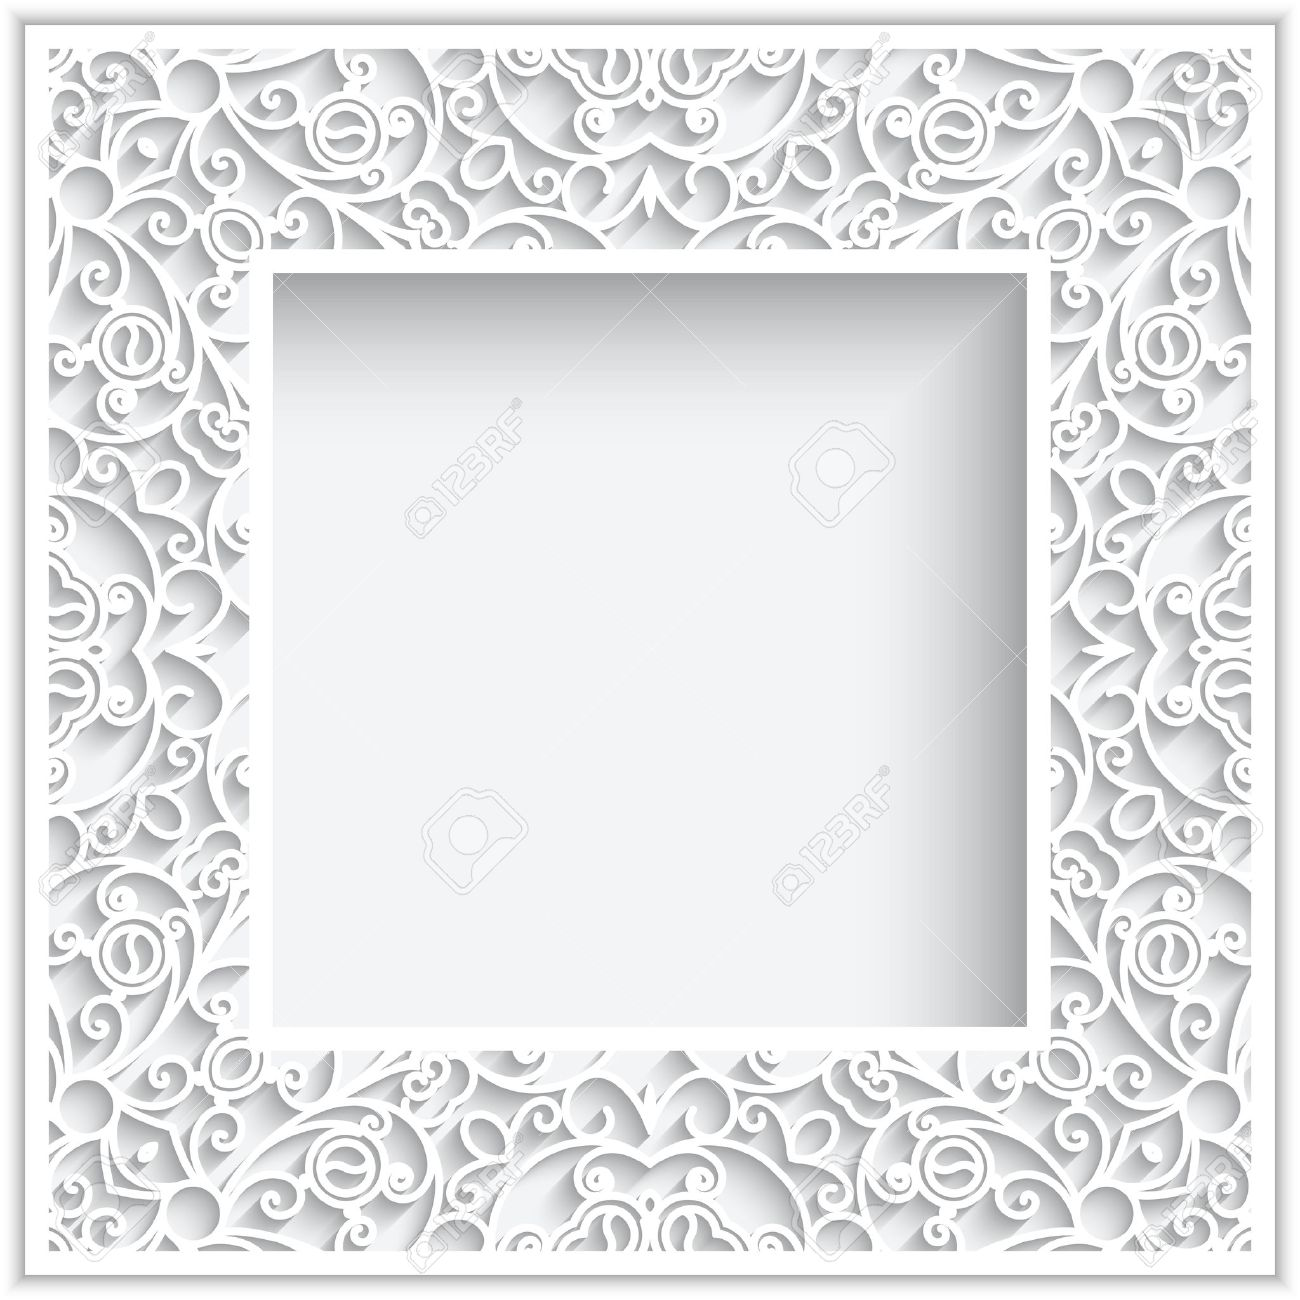 Abstract Square Frame With Paper Swirls, Ornamental White Background ...